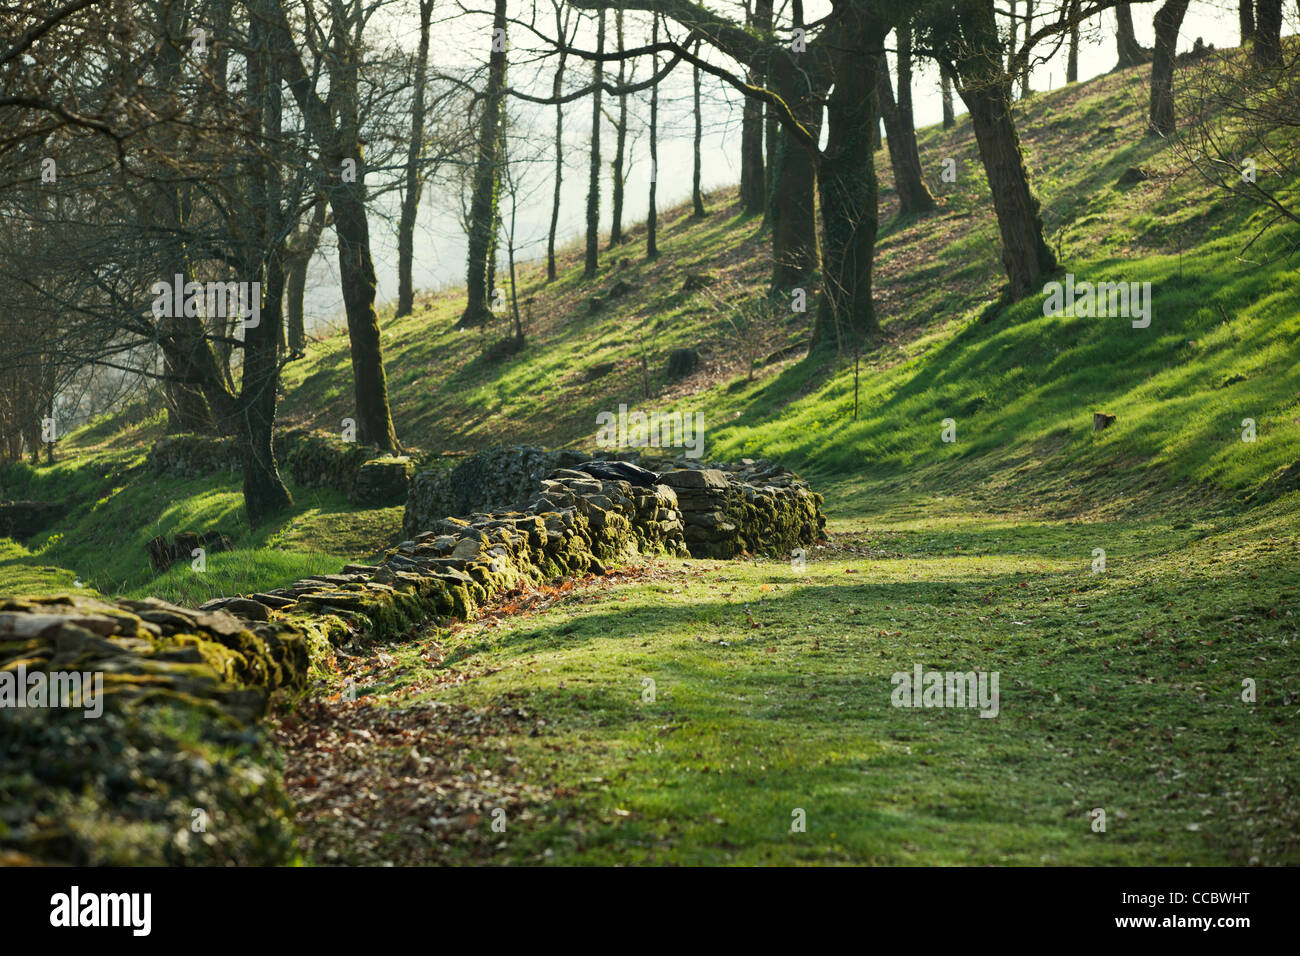 Old stone wall running through prairie, Poul-Fetan, Brittany, France - Stock Image